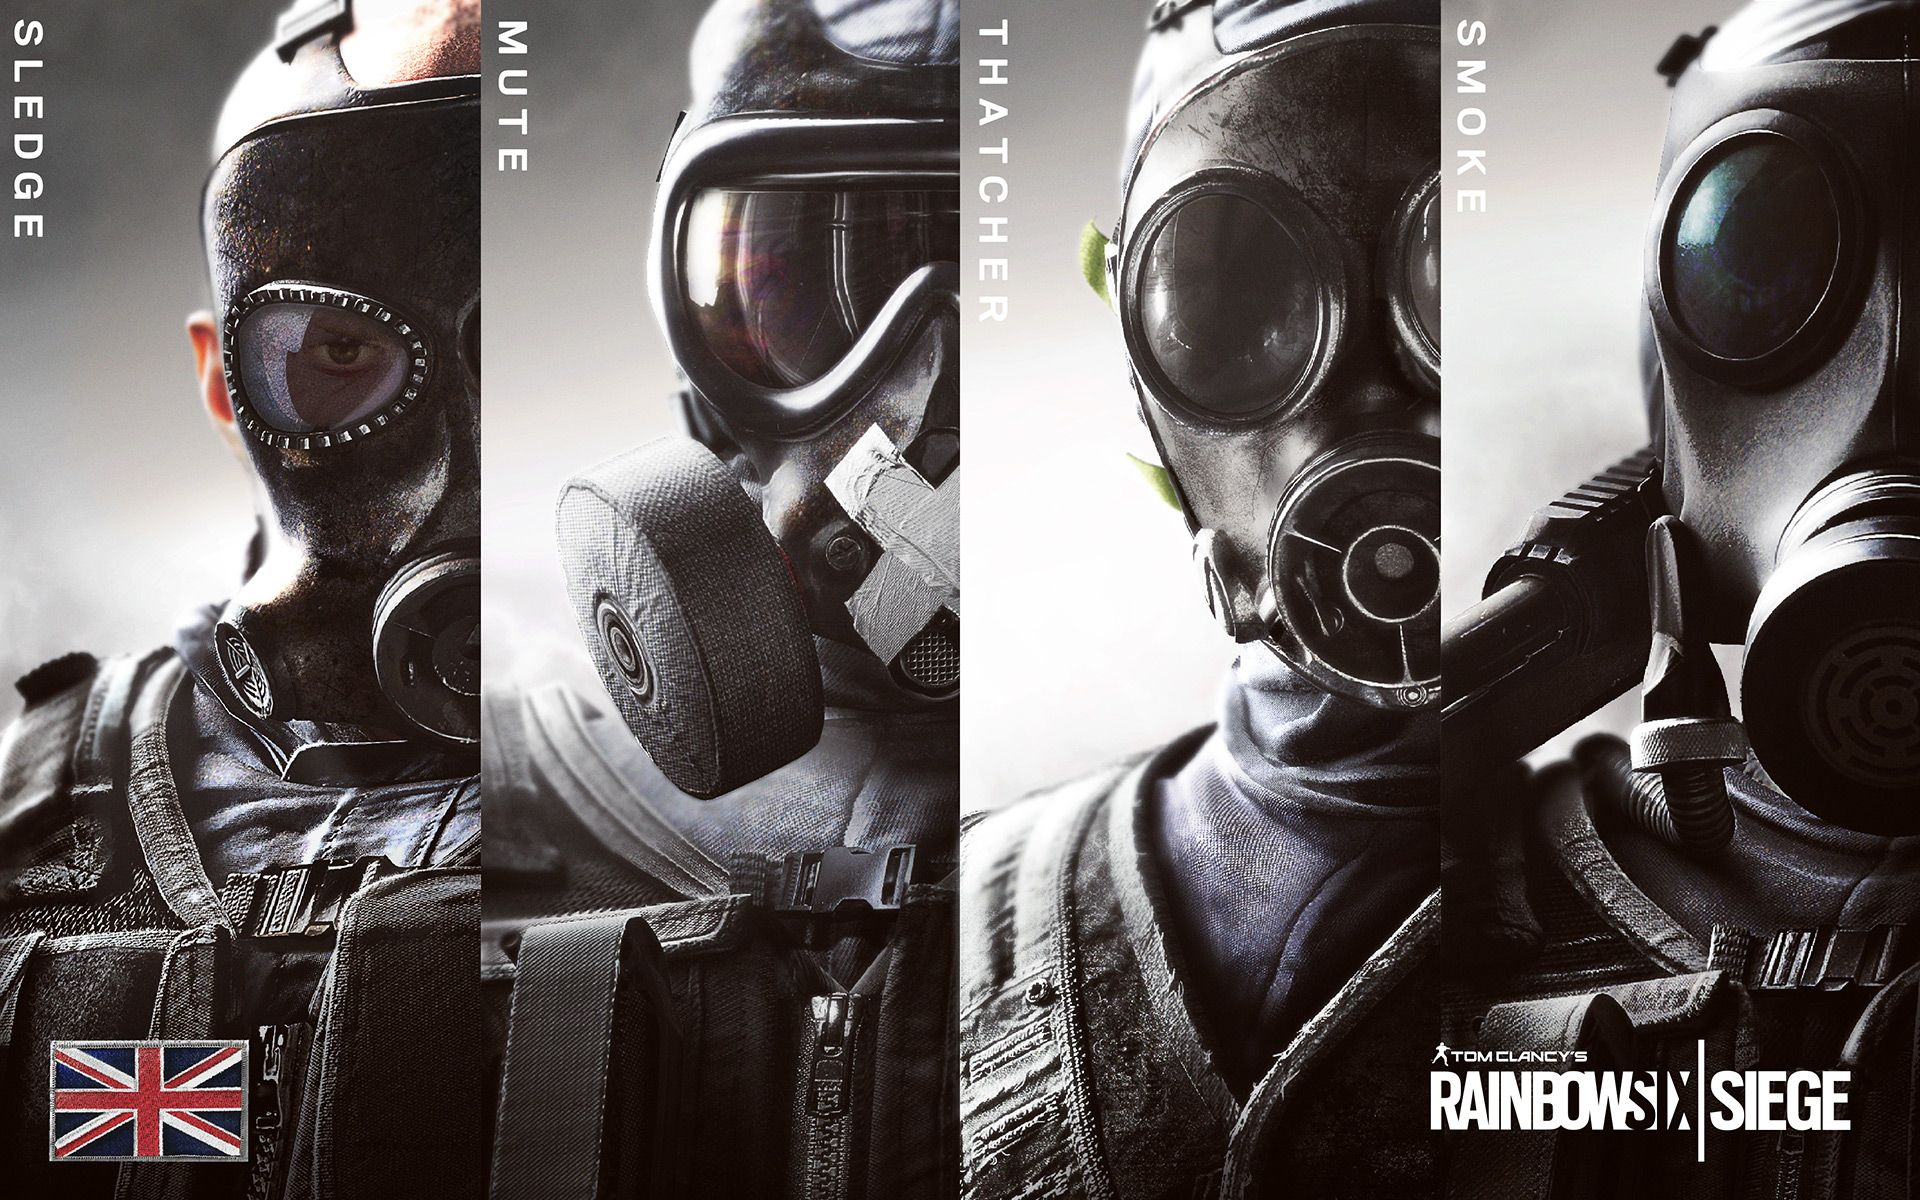 Rainbow Six Siege Wallpapers [1920x1080] Need #iPhone #6S #Plus #Wallpaper/ #Background for #IPhone6SPlus? Follow iPhone 6S Plus 3Wallpapers/ #Backgrounds Must to Have http://ift.tt/1SfrOMr